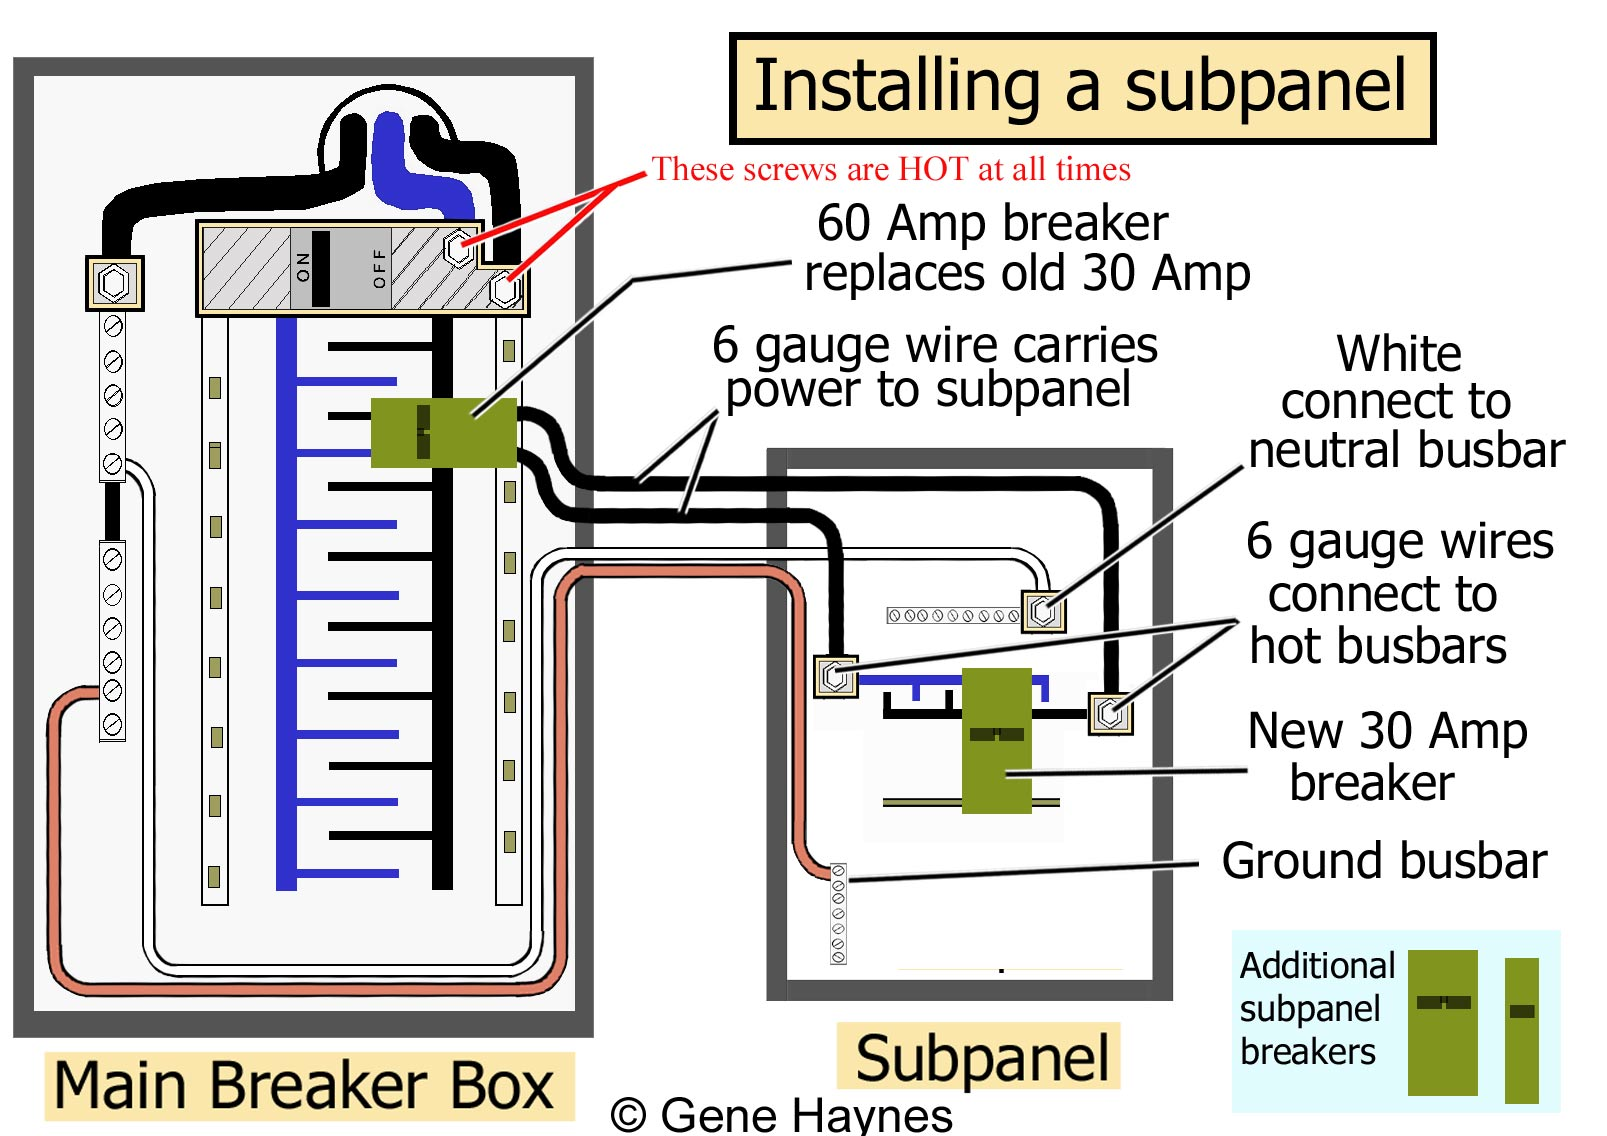 How to install a subpanel how to install main lug 1 60 150 amp breaker replaces any 240 breaker in main box near top of box greentooth